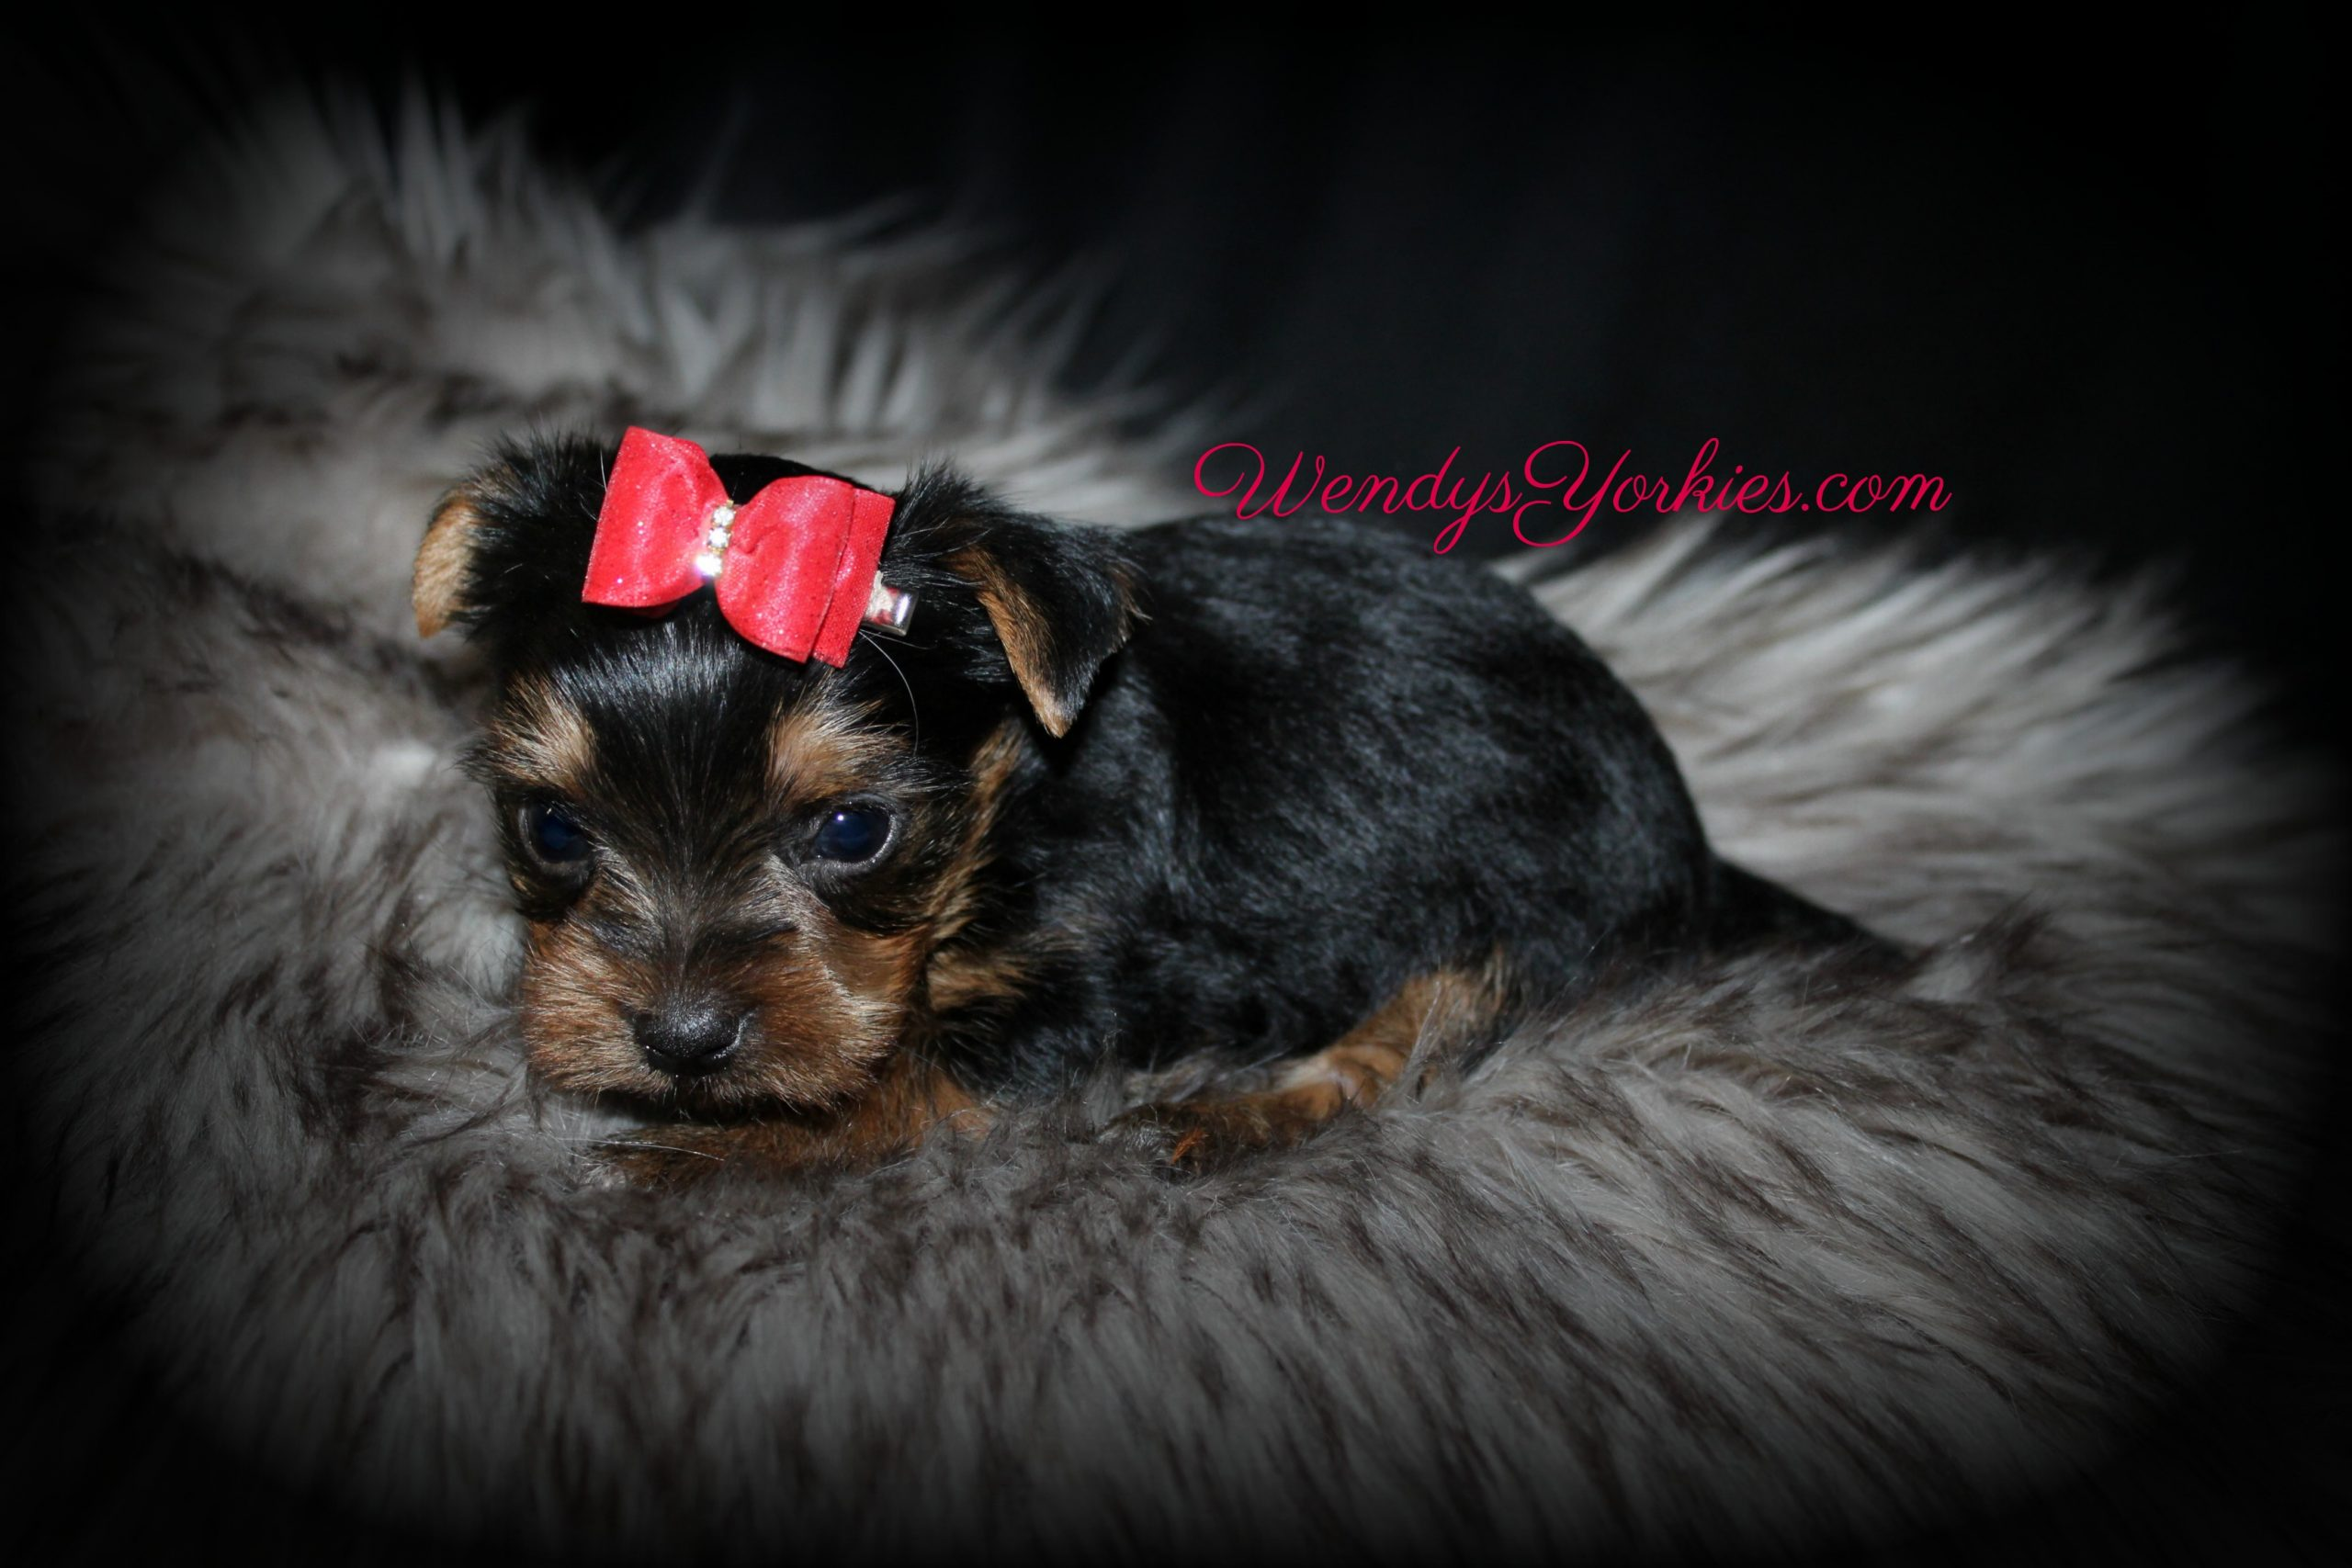 Yorkie puppies for sale, Lacy m1, WendysYorkies.com